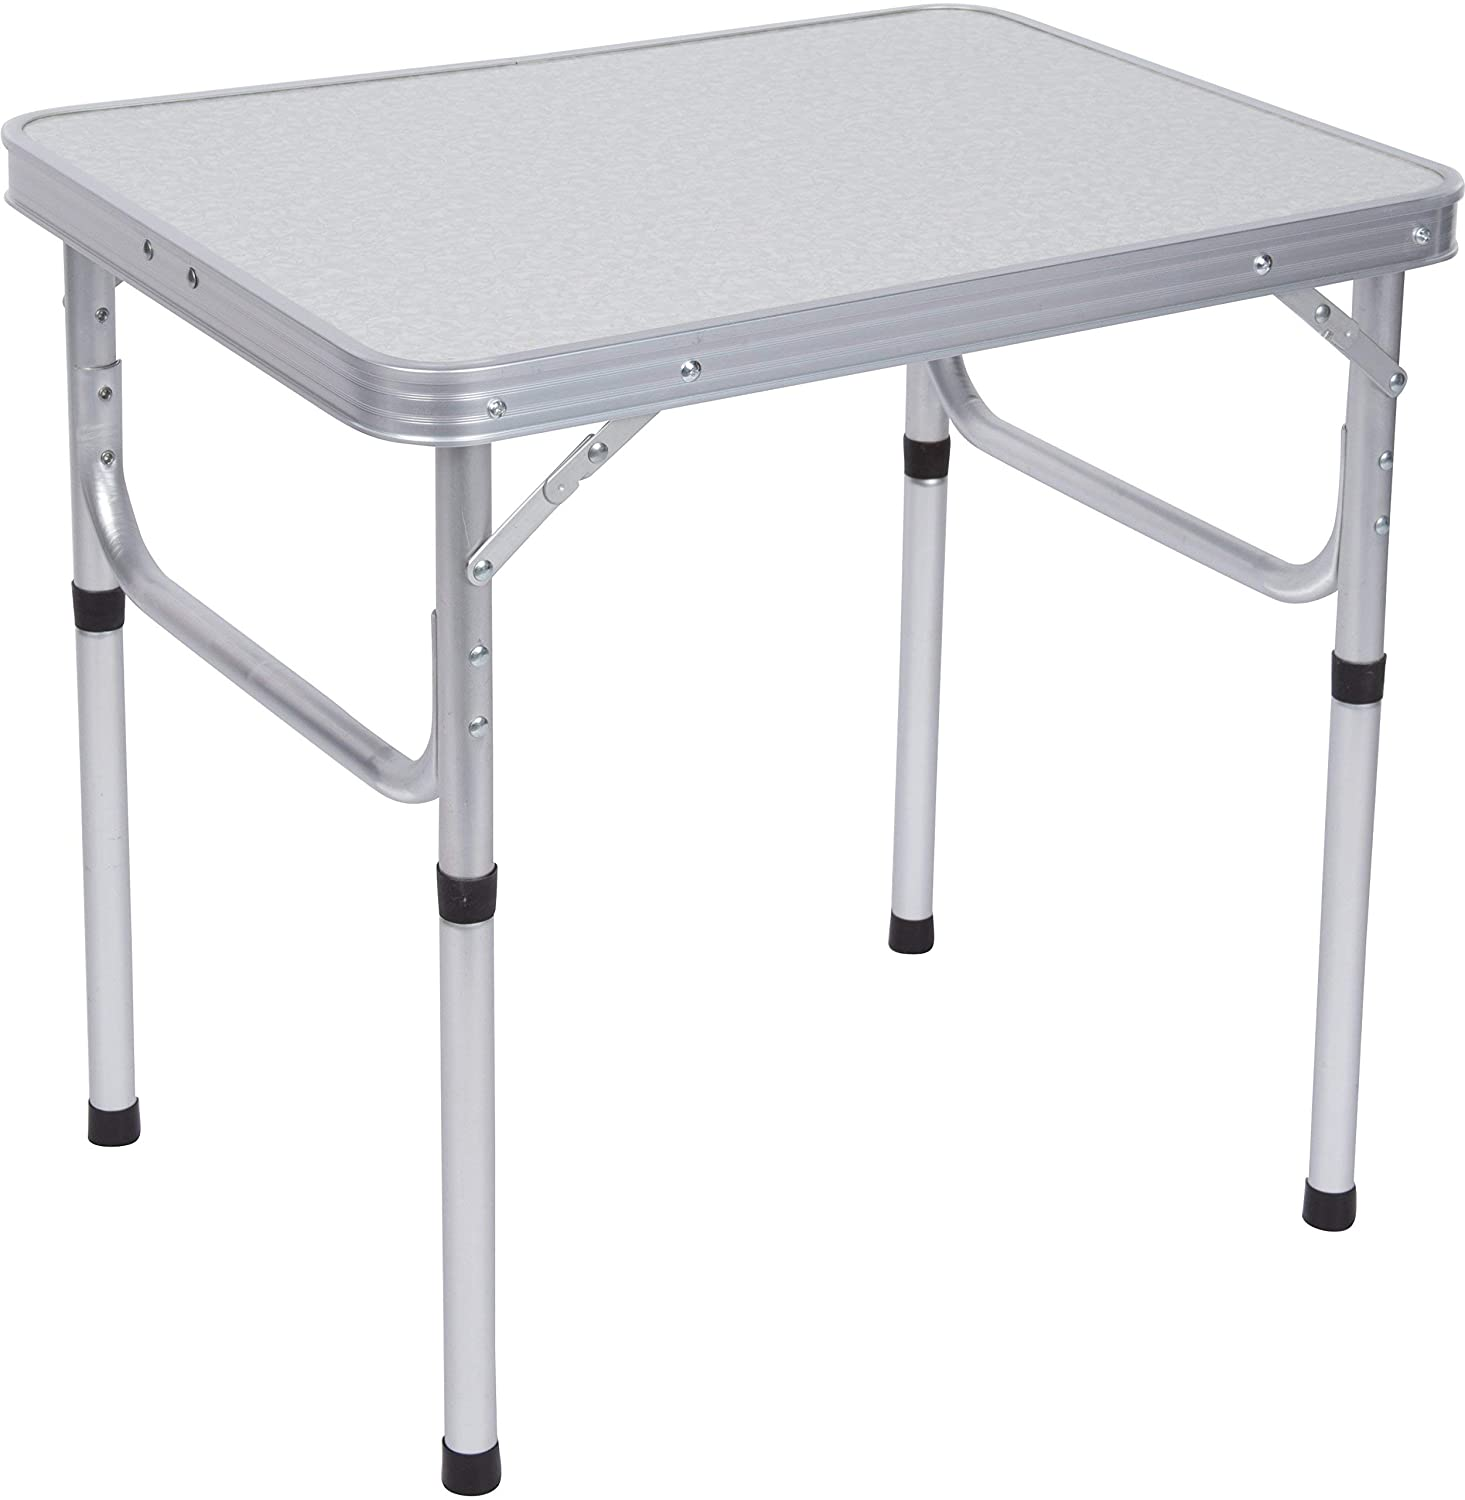 Trademark Innovations Aluminum Adjustable Portable Folding Camp Table With Carry Handle